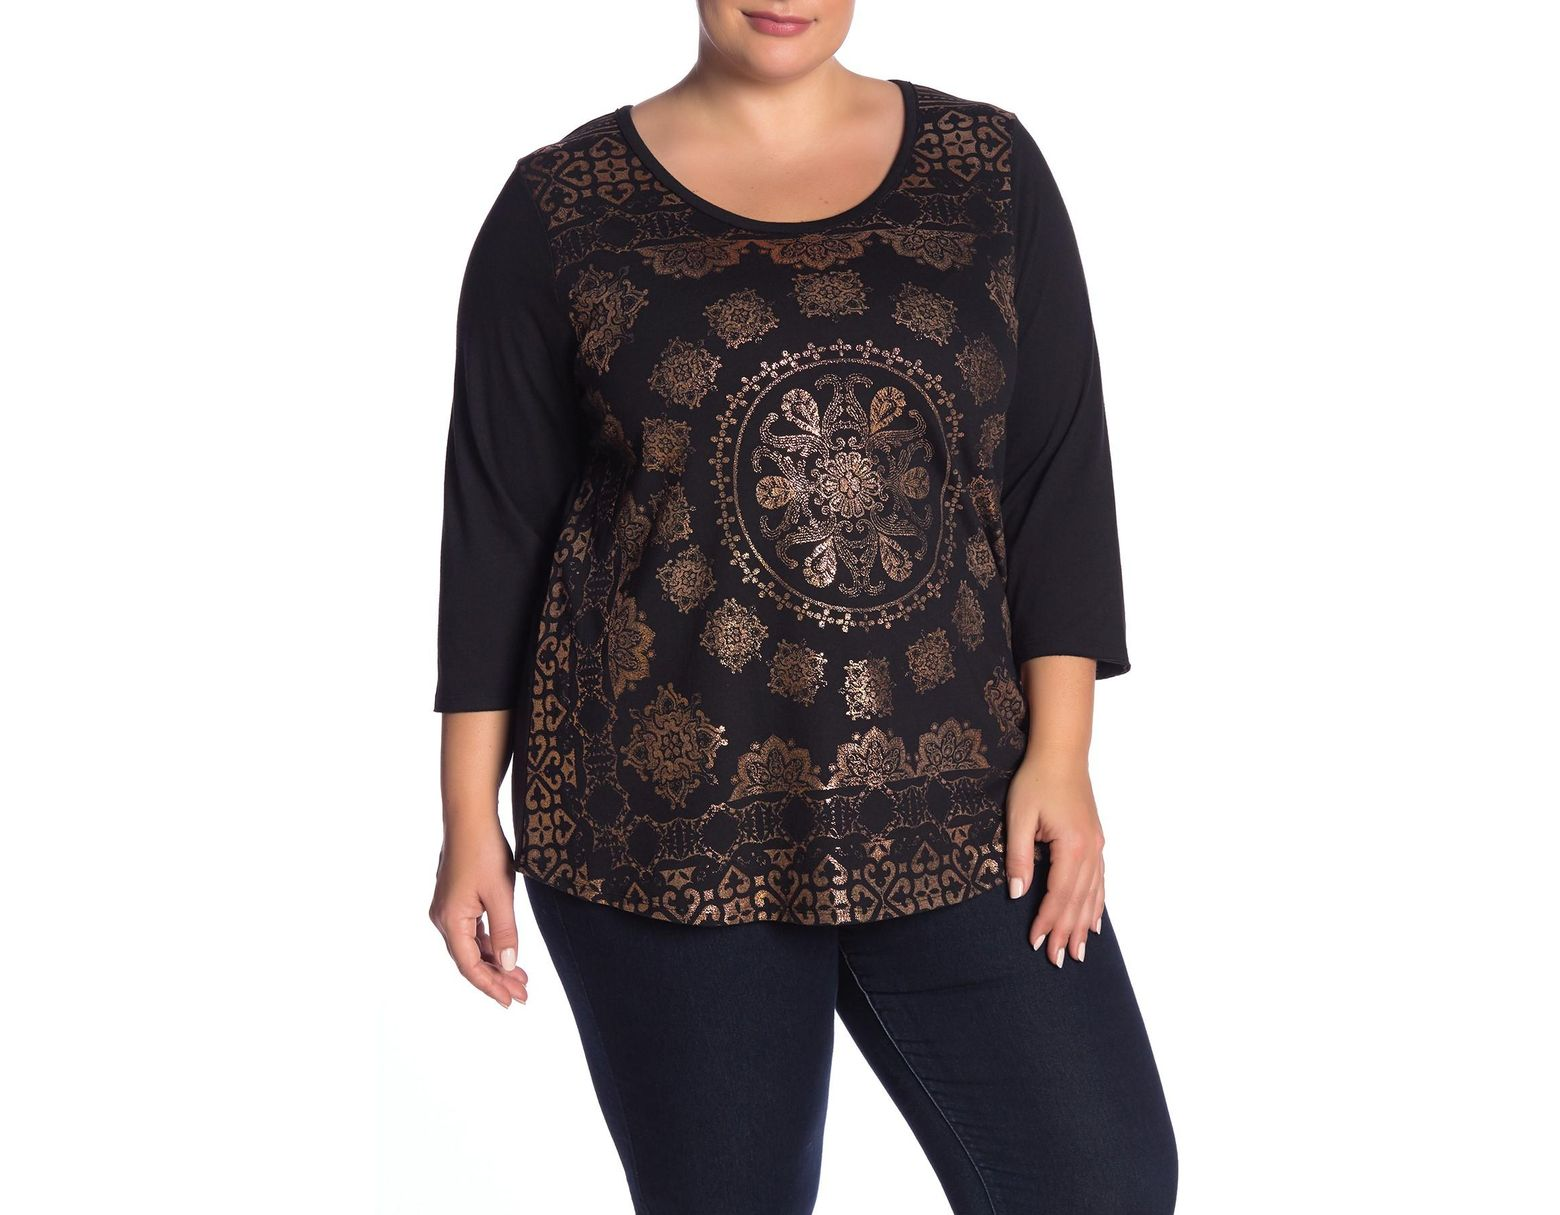 Lucky Brand Womens Scoop Neck Three-Quarter-Sleeve Graphic T-Shirt $39